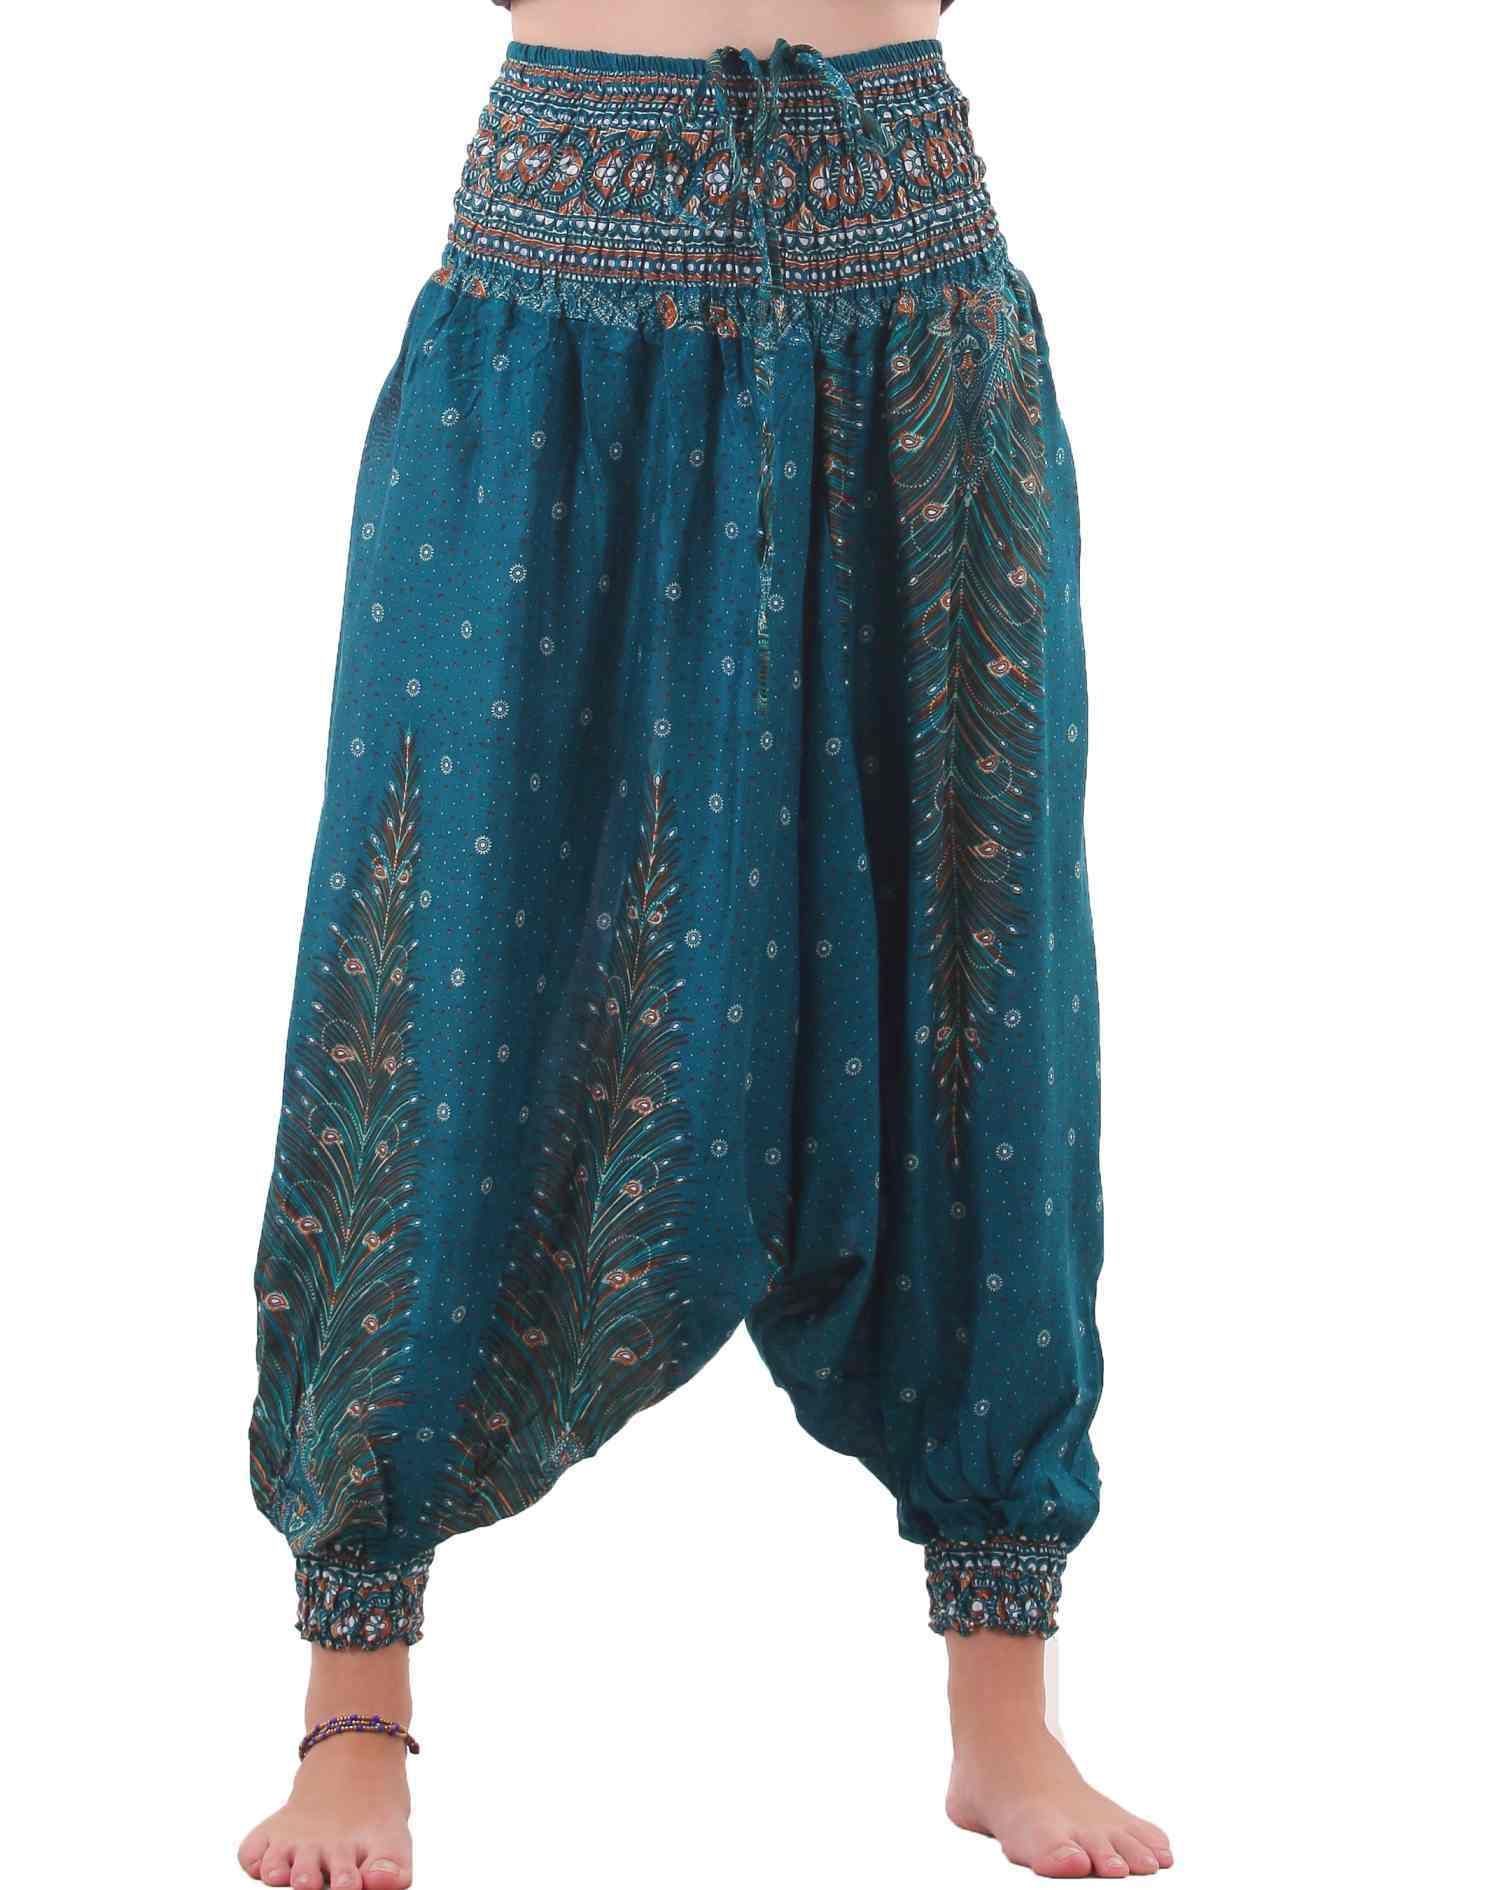 Harem pants look like MC Hammer pants. The crotch is lower and the side seams may meet under the rise with 4 corners, instead of adding a fly or a diamond shape like activewear.